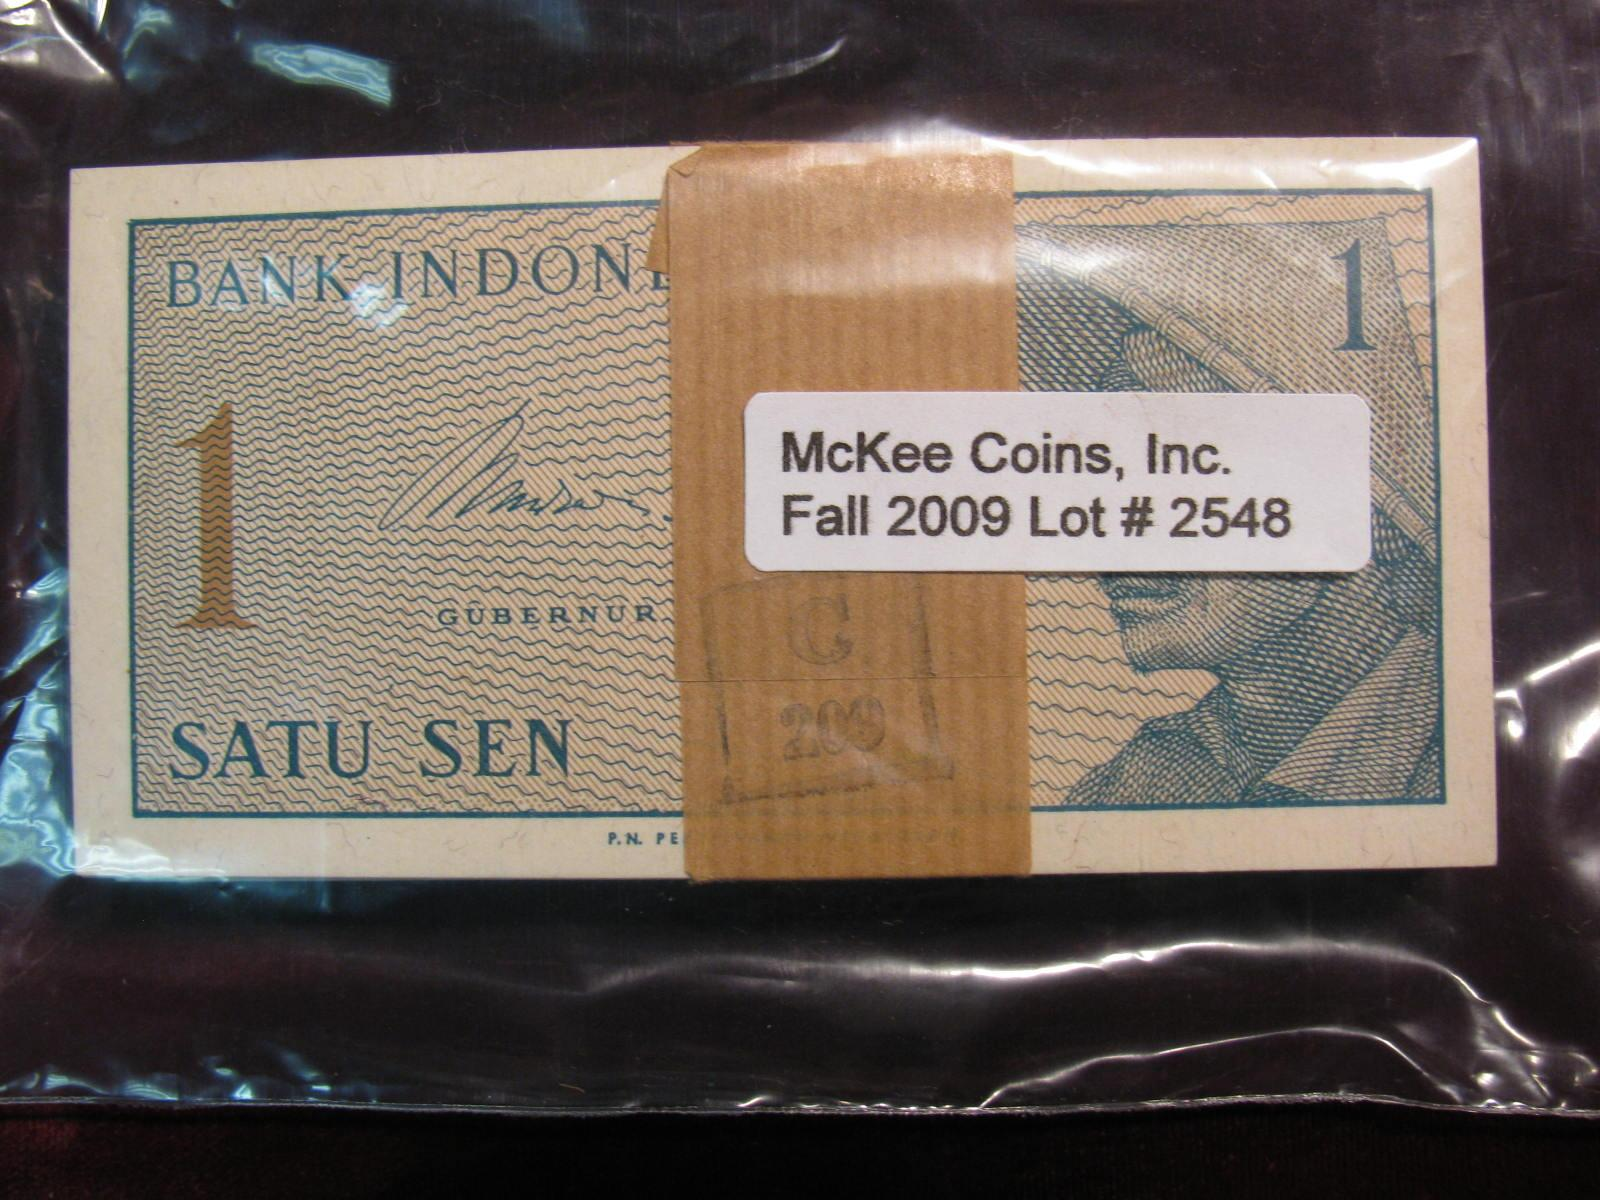 2548. 1964 Original Bundle Of Indonesia Satu Sen Notes. UNC. Loading zoom